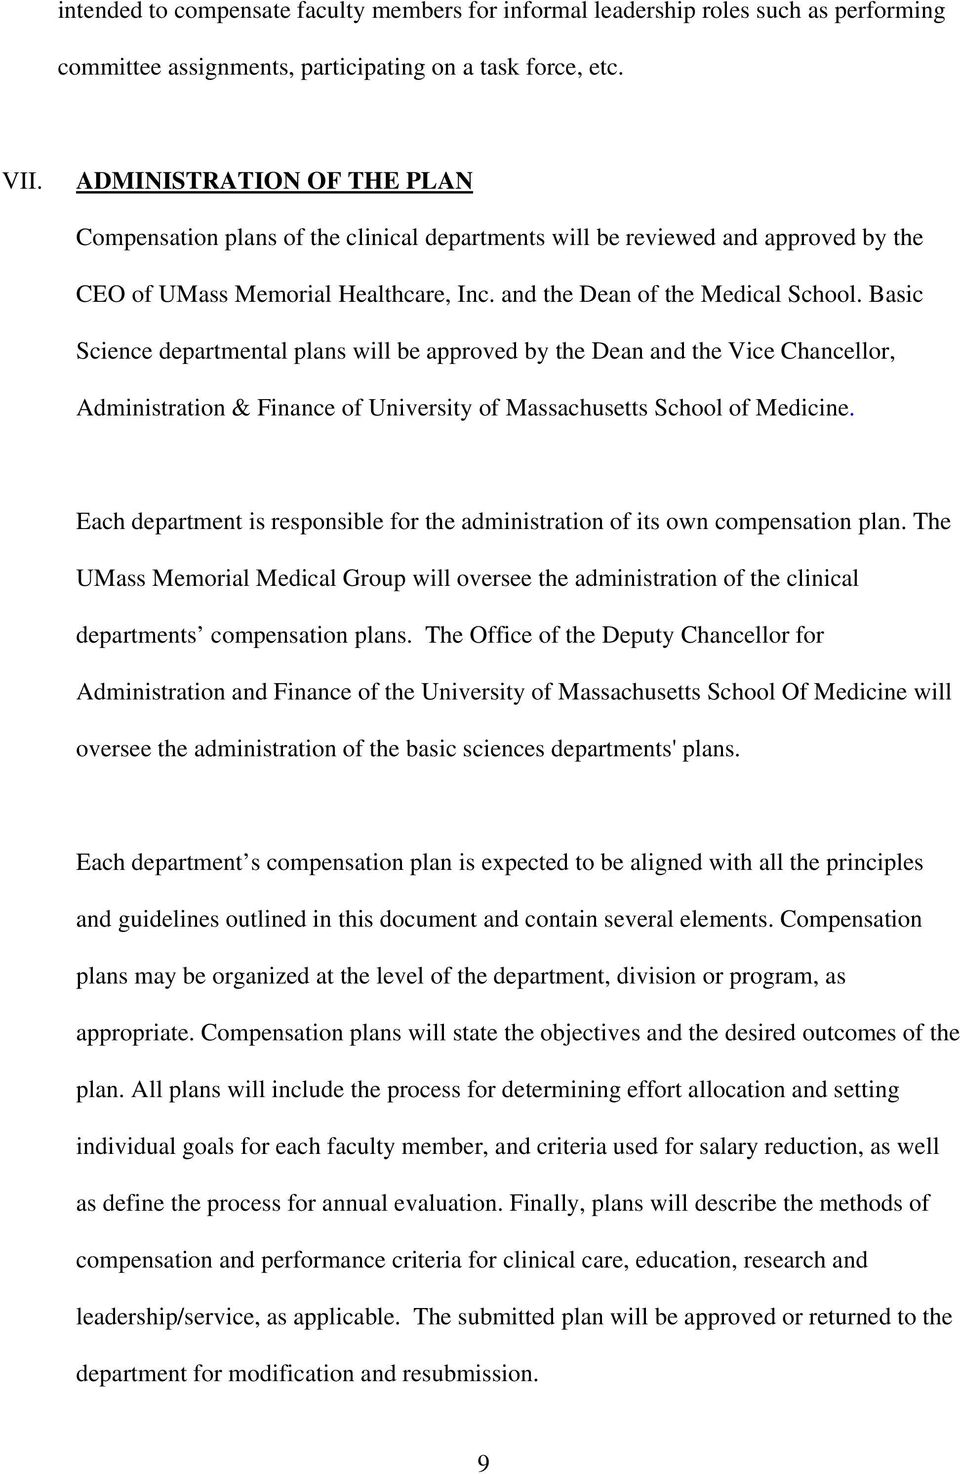 Basic Science departmental plans will be approved by the Dean and the Vice Chancellor, Administration & Finance of University of Massachusetts School of Medicine.